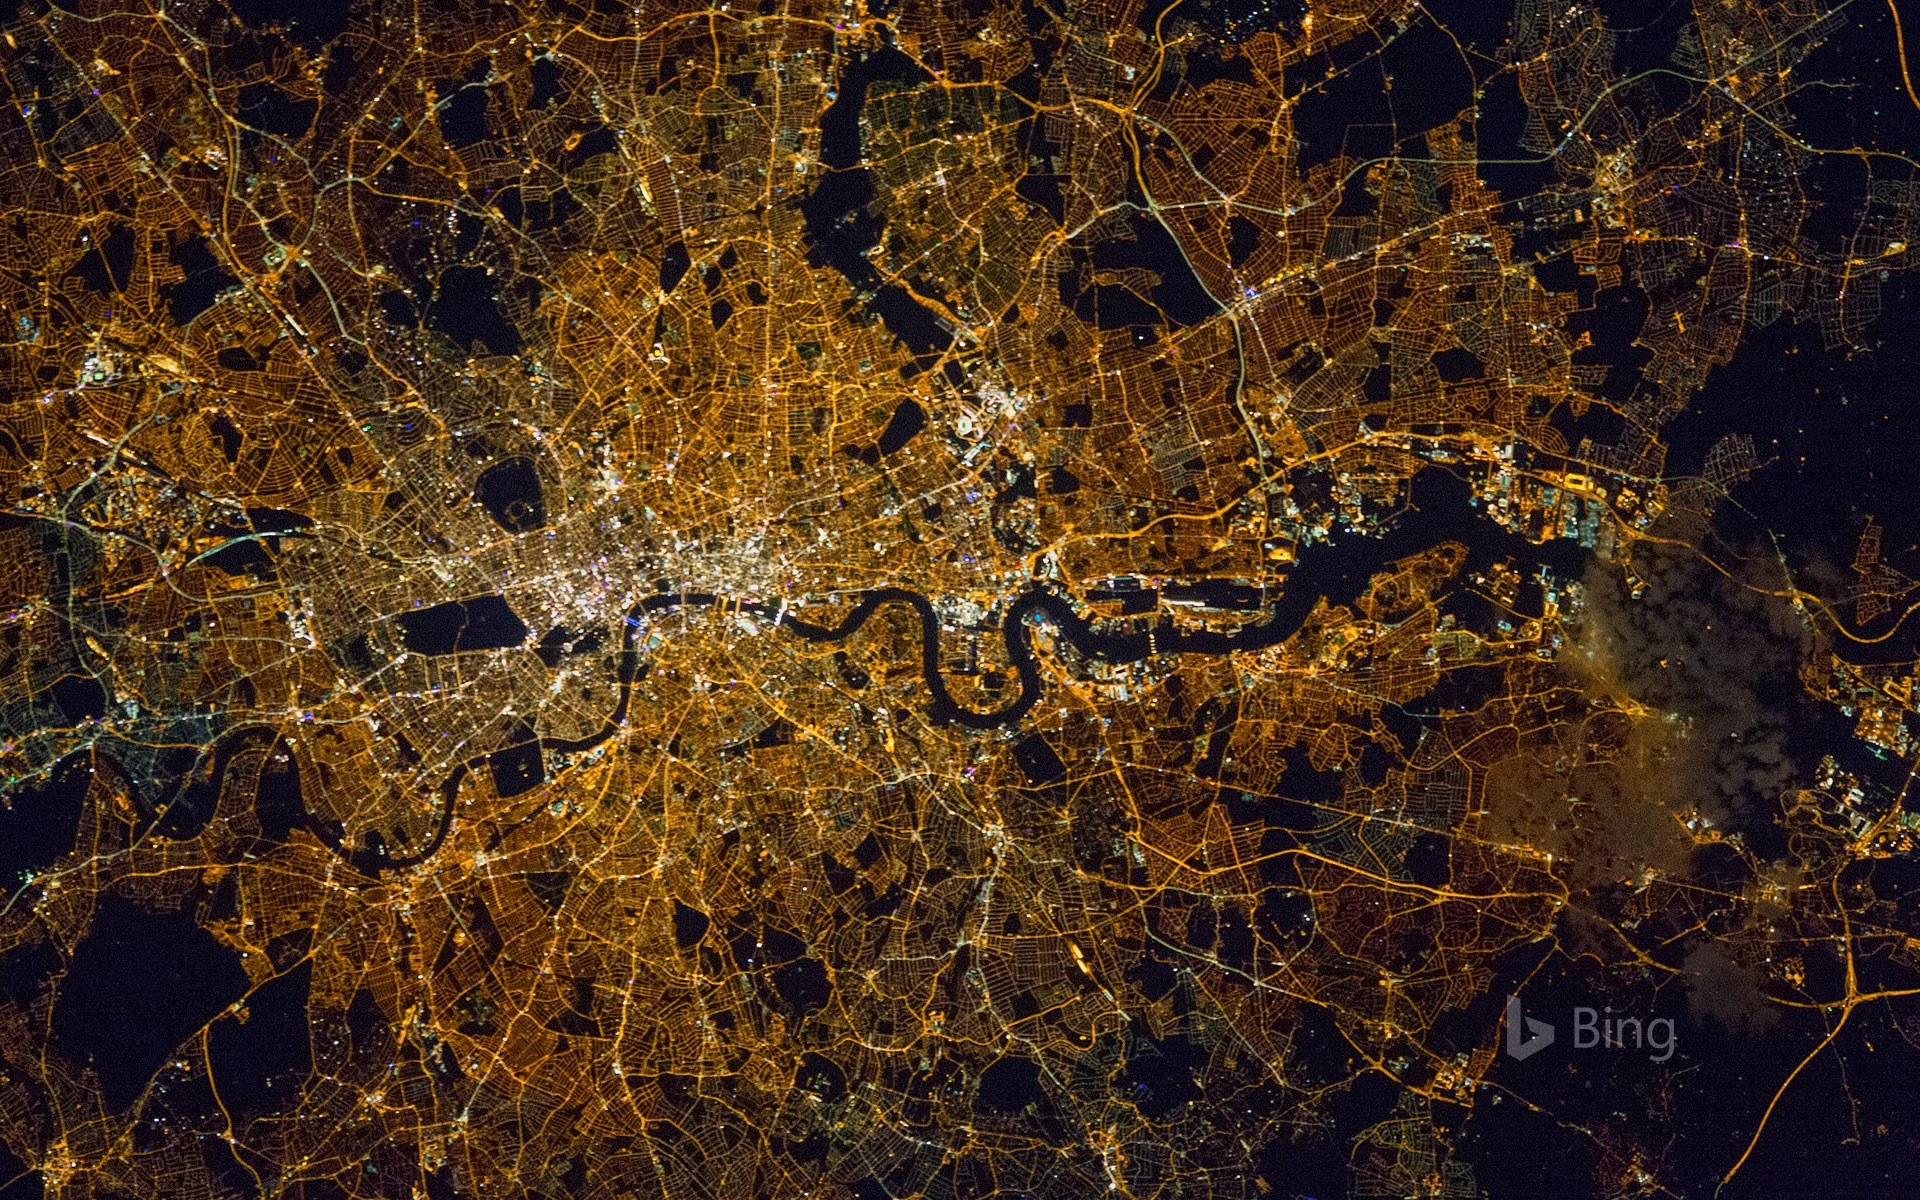 London and surroundings photographed from the International Space Station